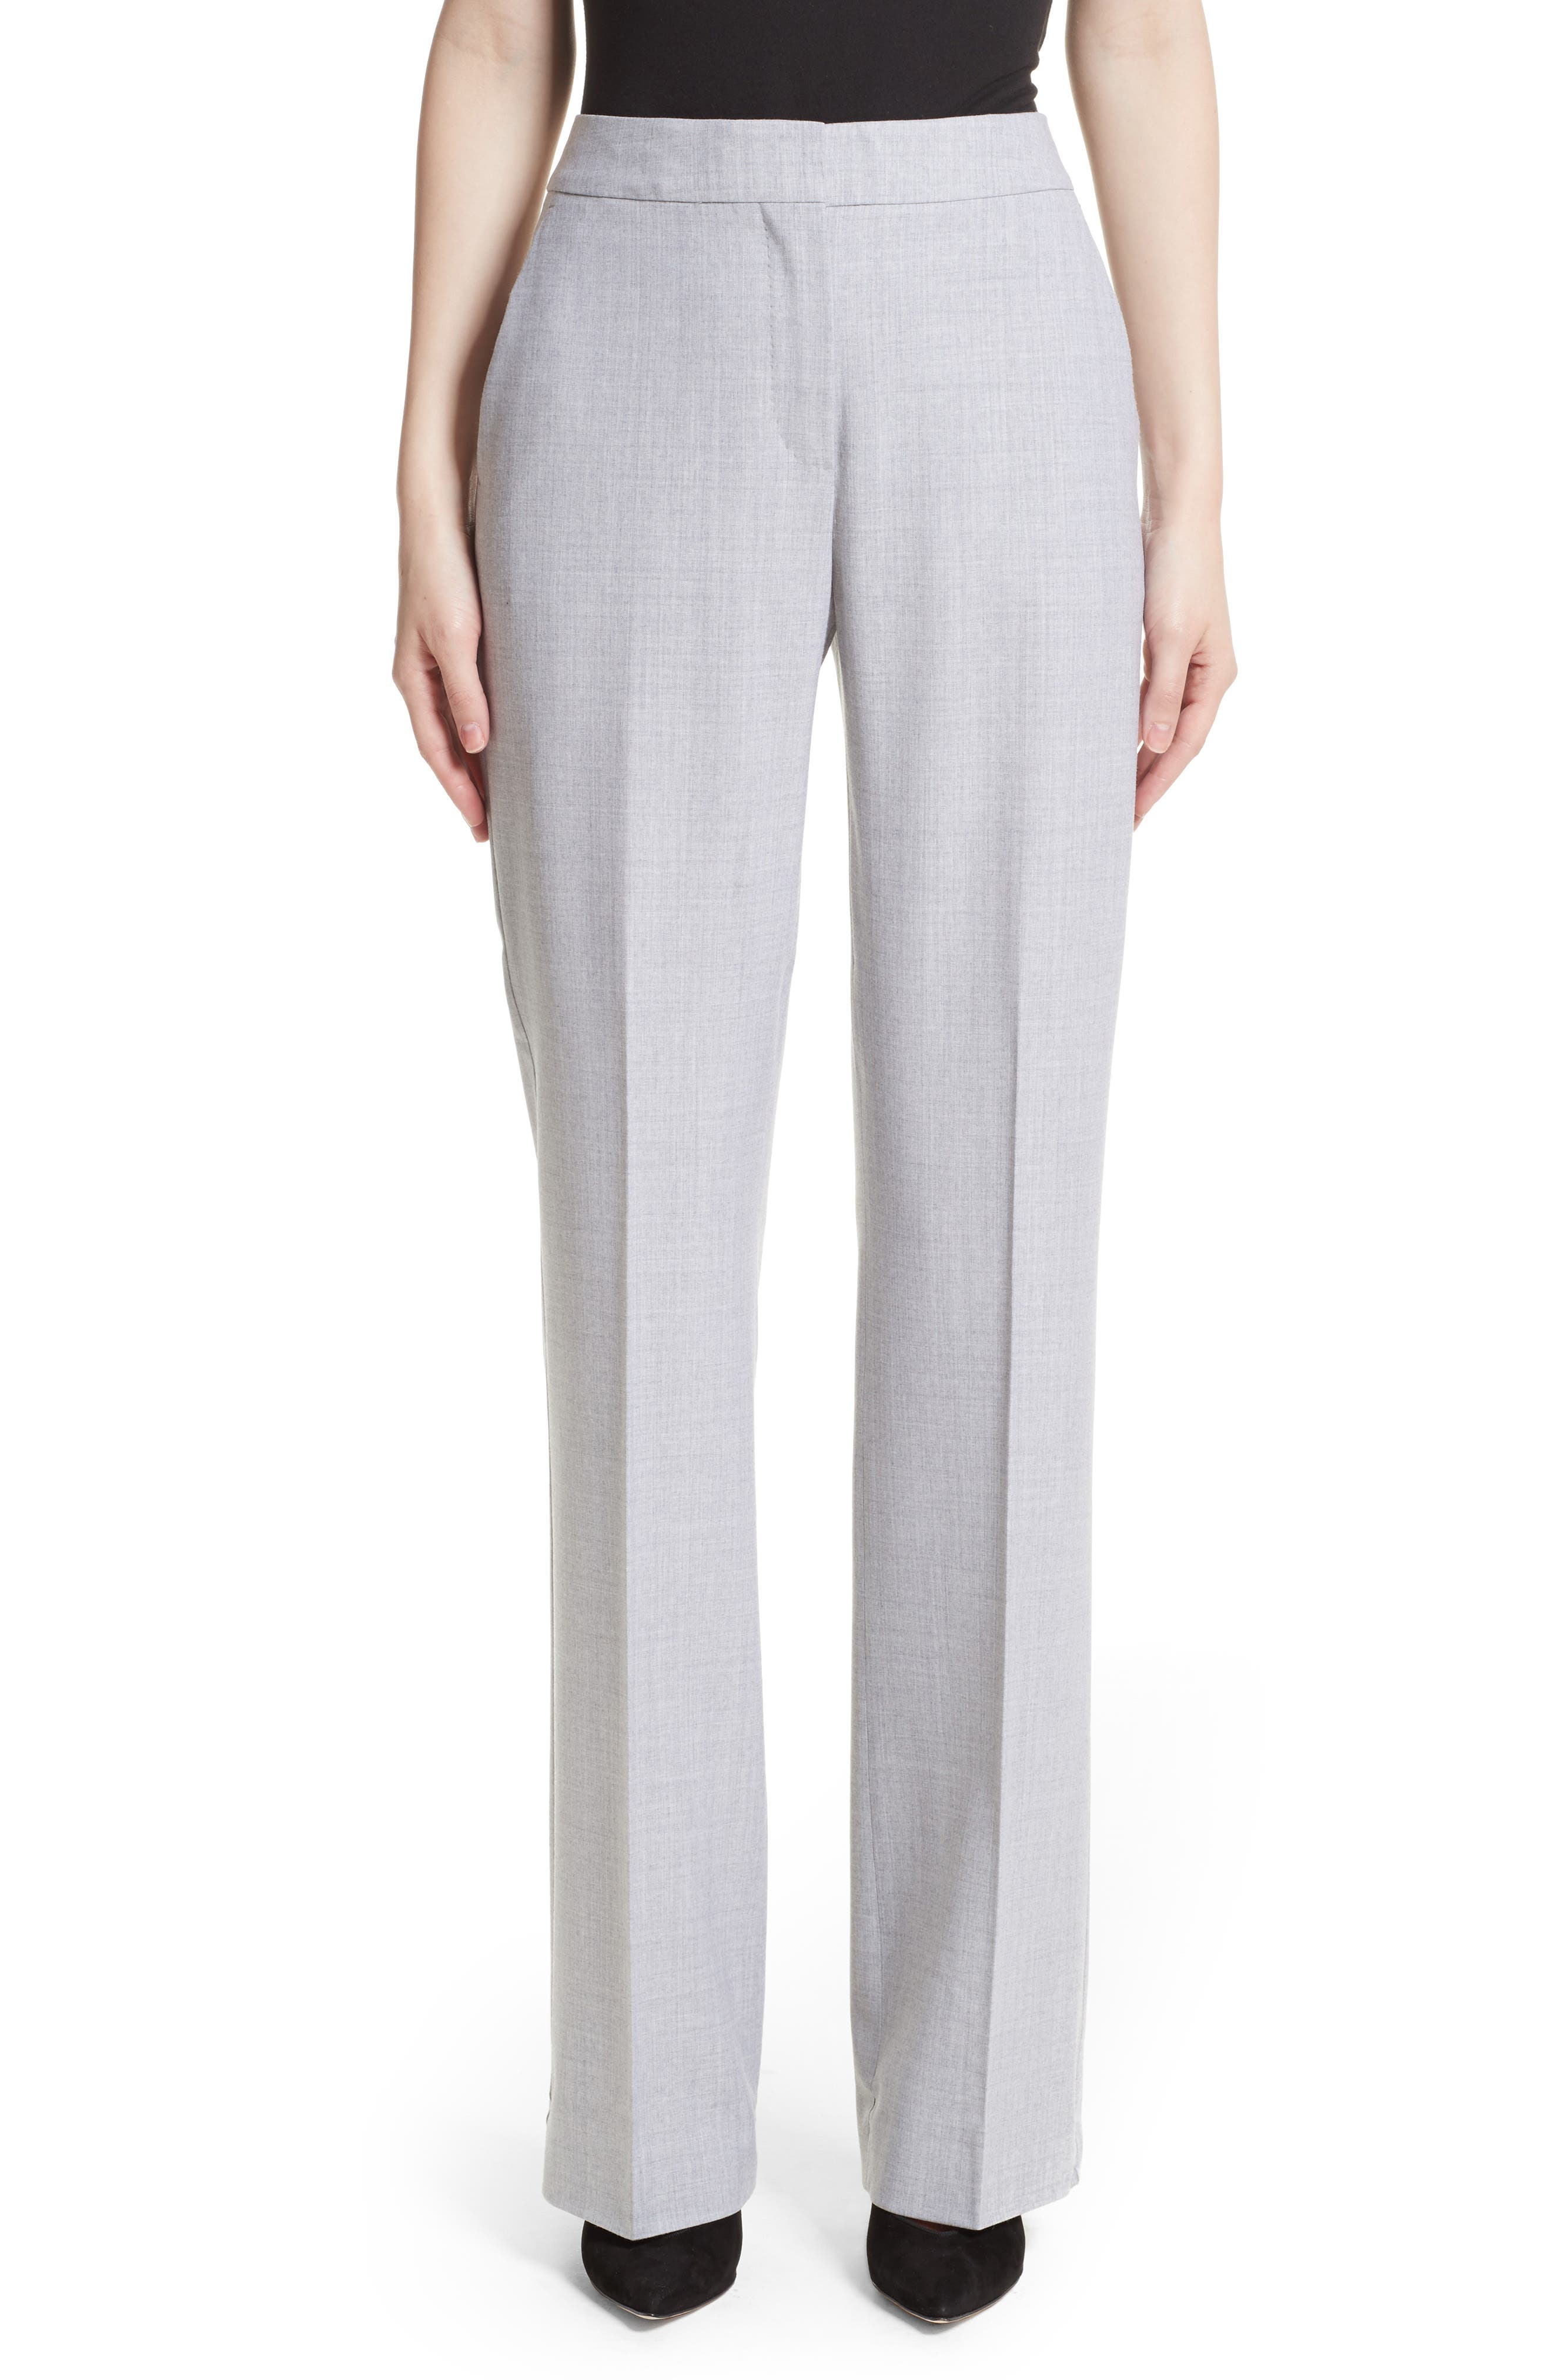 Alessia Stretch Wool Pants,                             Main thumbnail 1, color,                             Light Grey